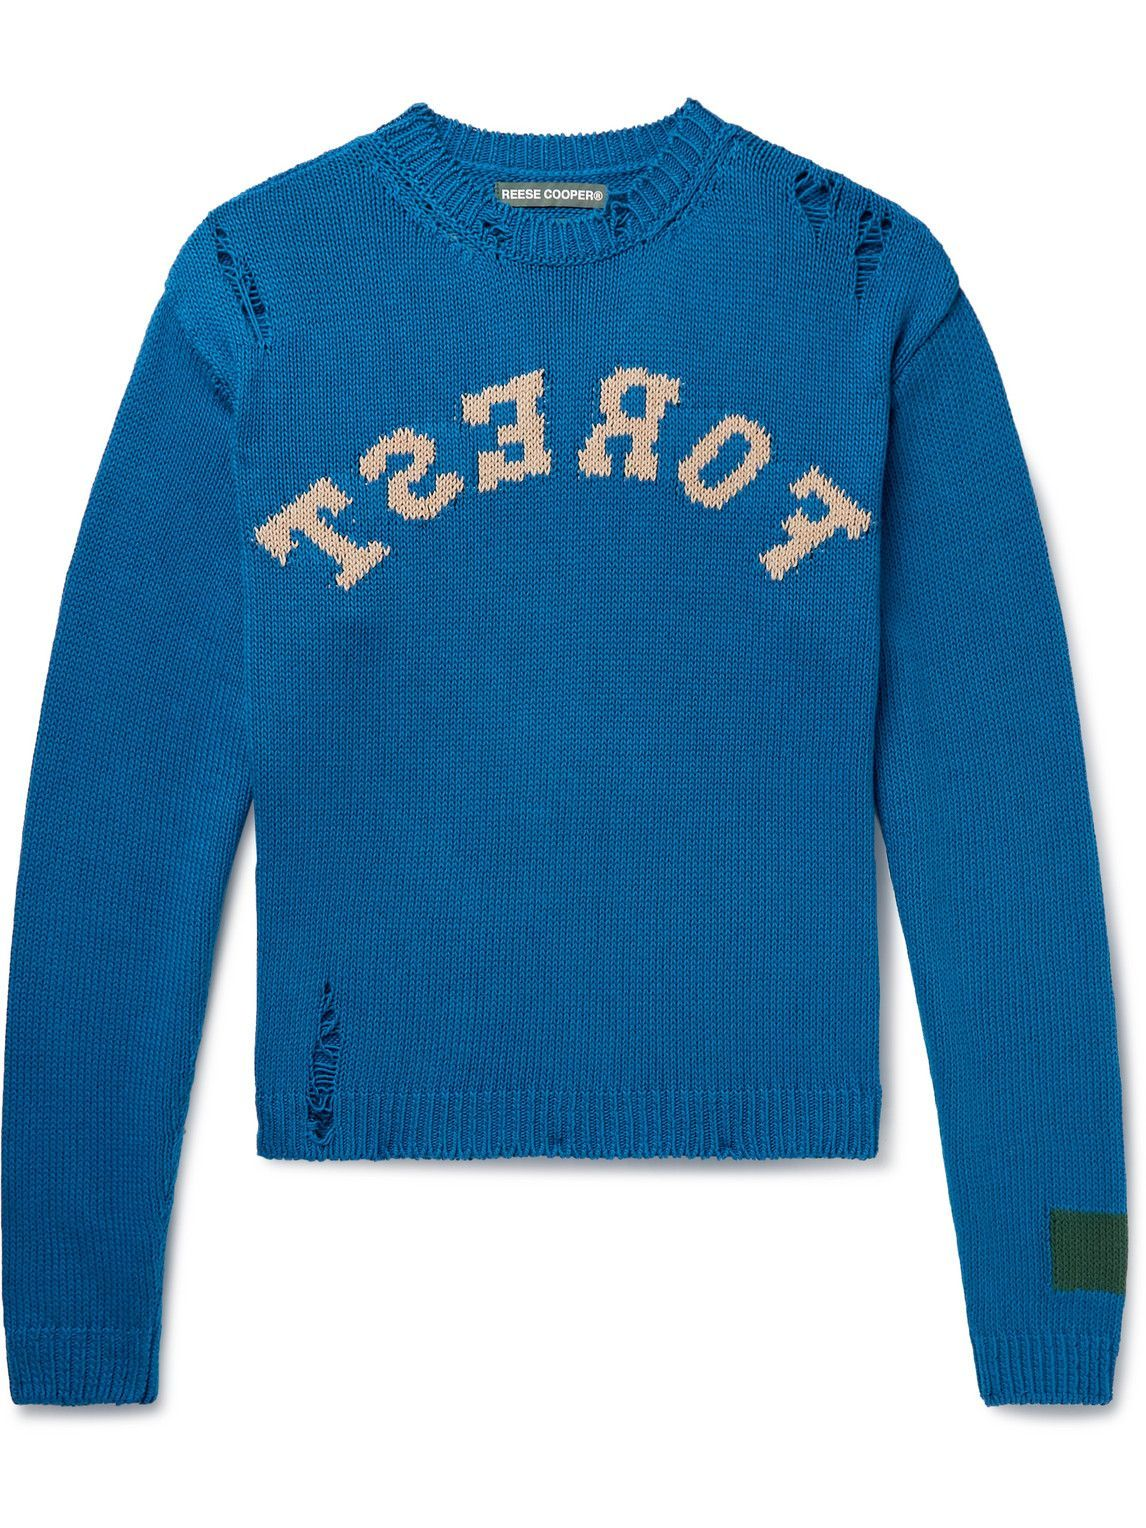 Photo: Reese Cooper® - Distressed Intarsia Cotton Sweater - Blue